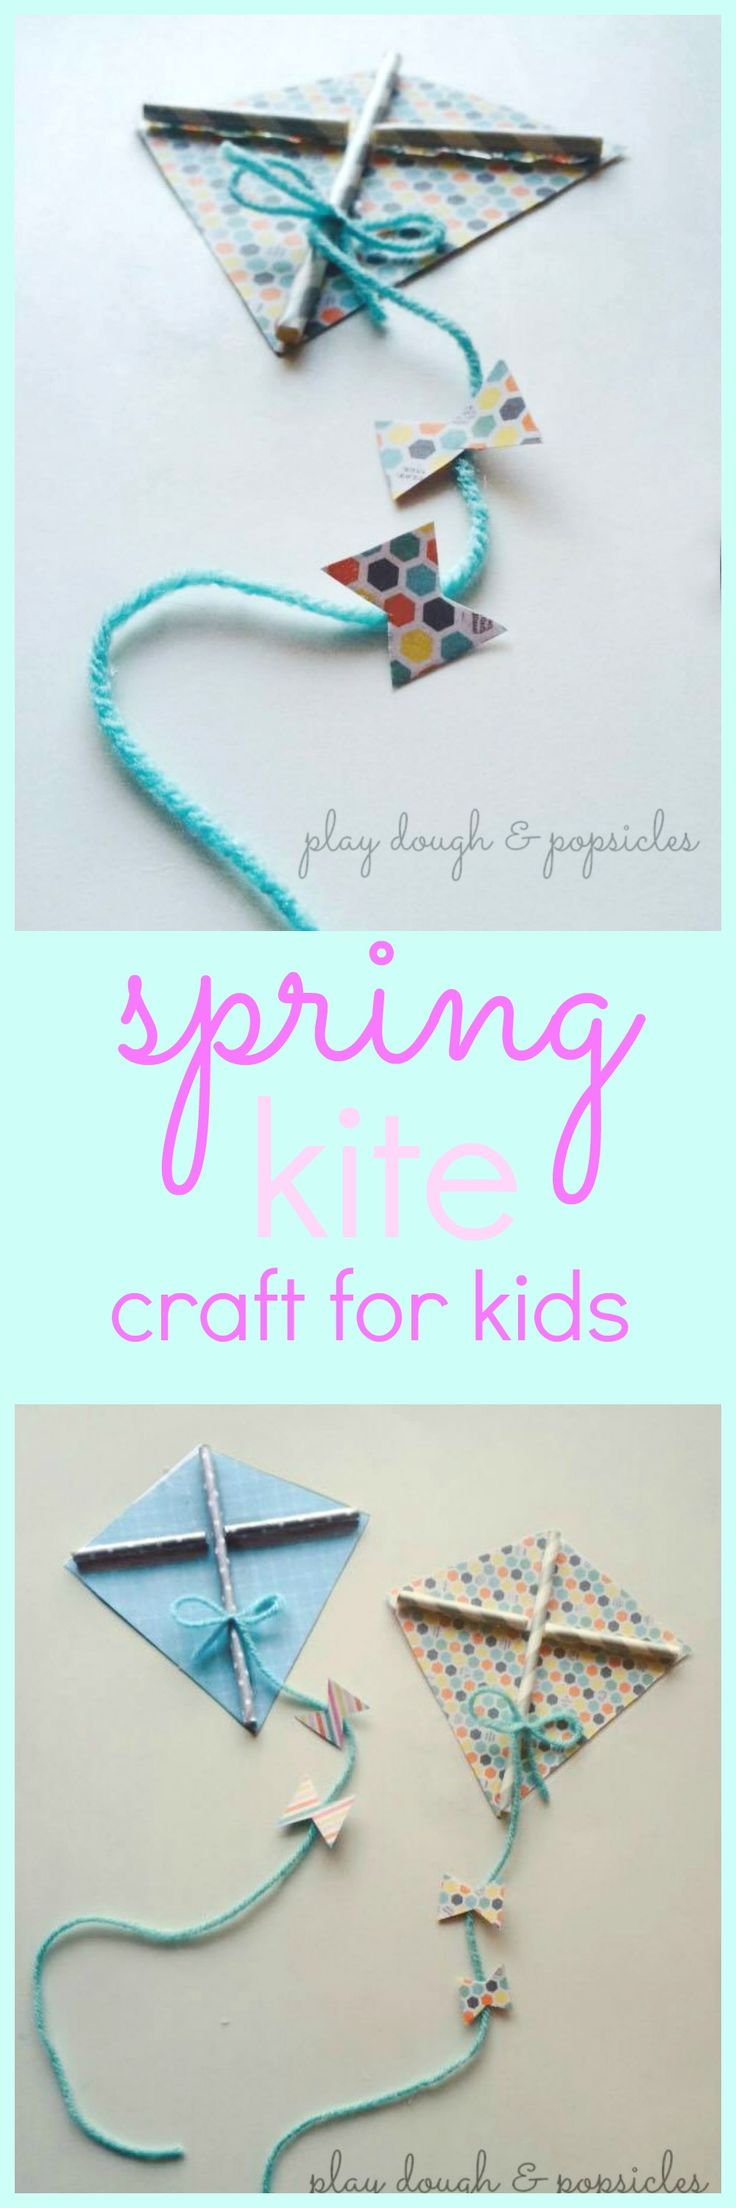 Kite Craft For Kids Colorful Fun Made From Card Stock And Paper Straws Letter K Preschool